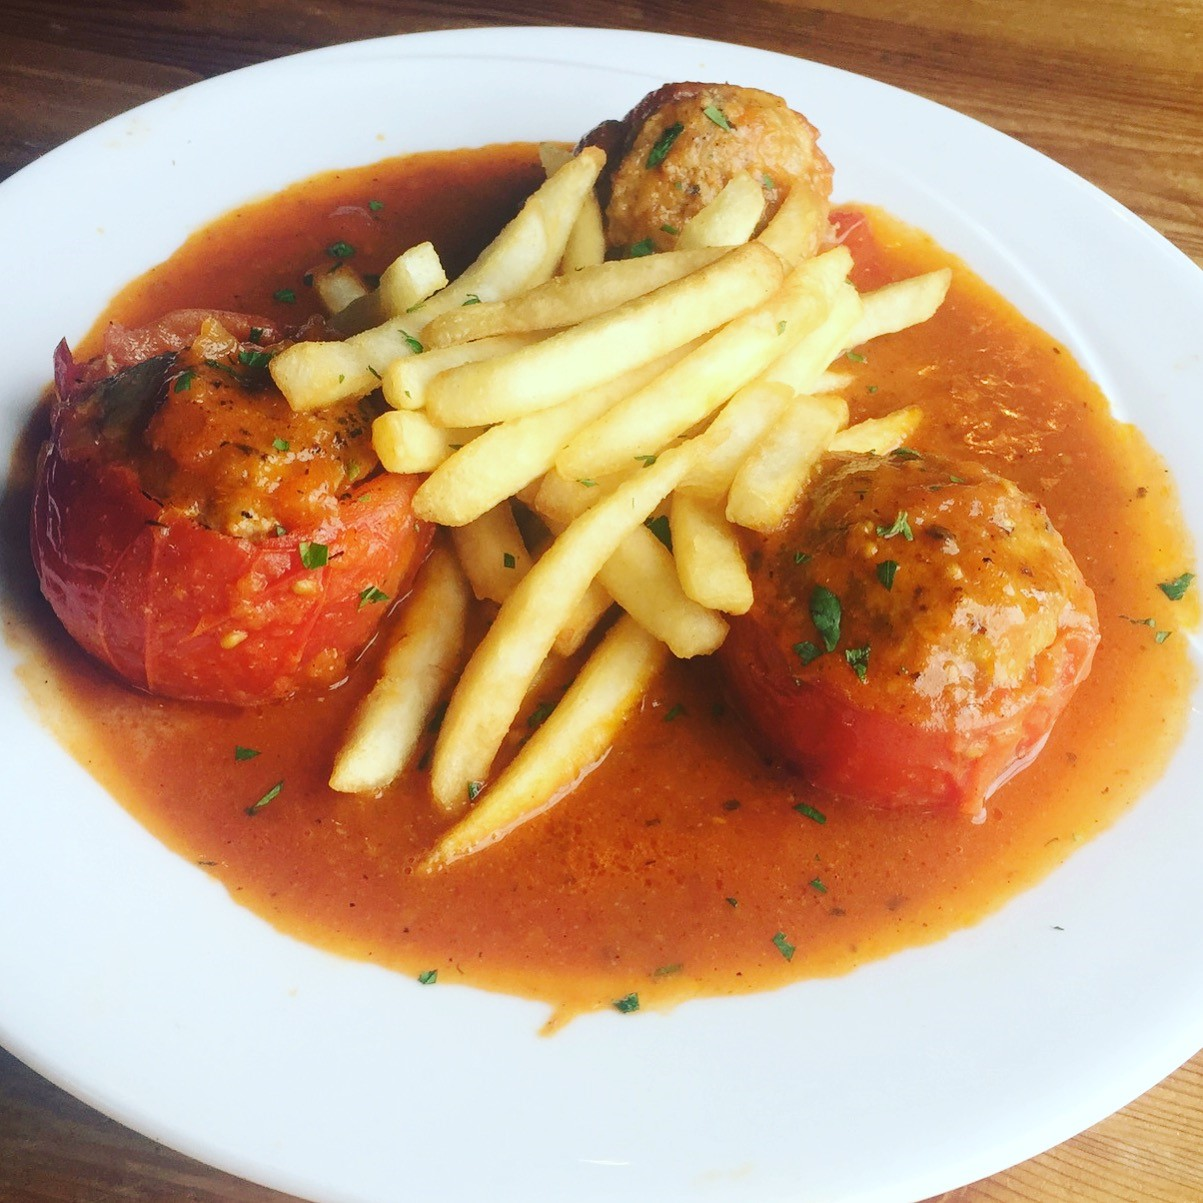 3 meatballs topped with fries in sauce on a dish